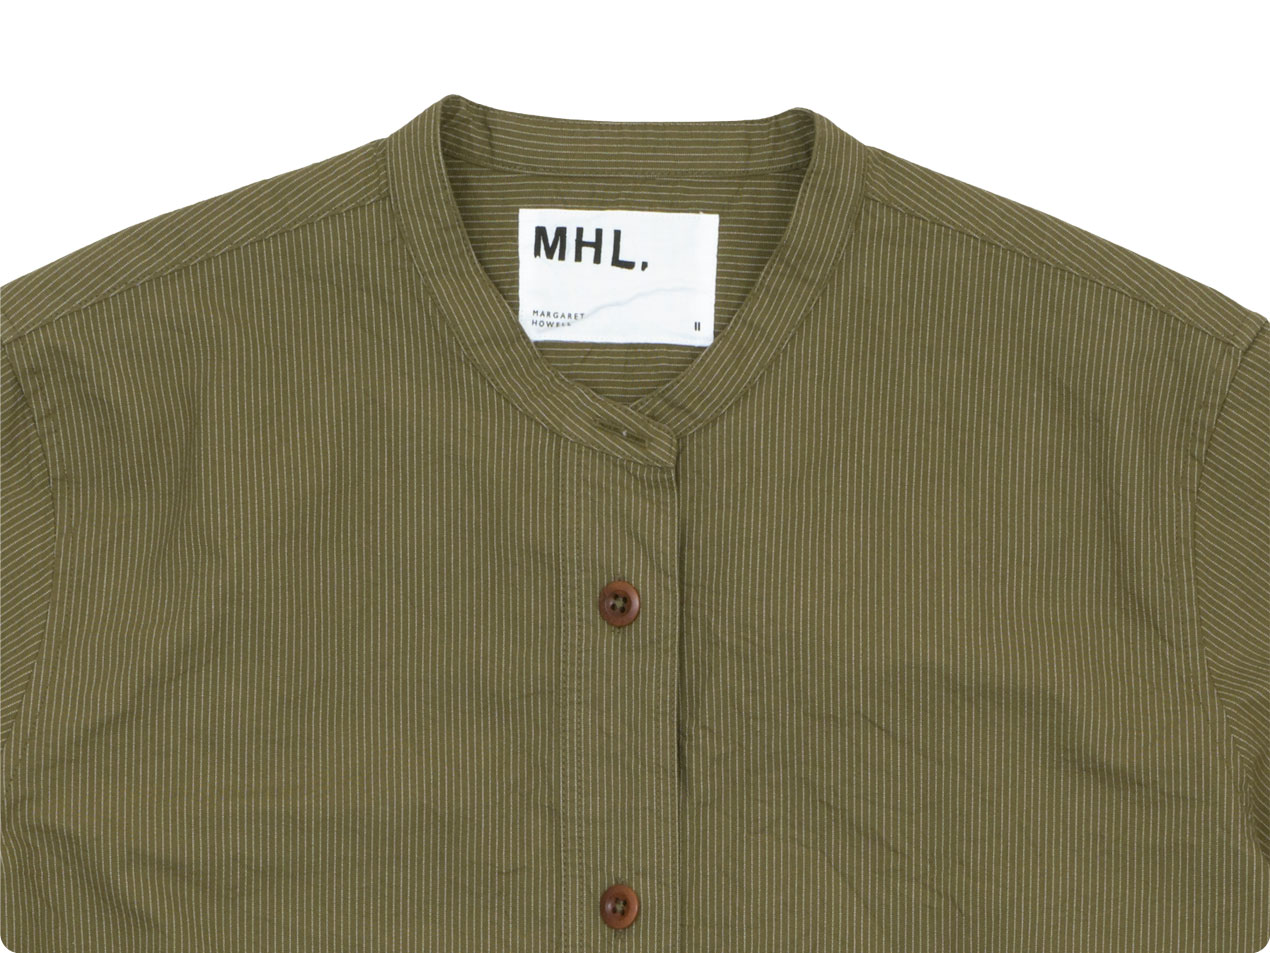 MHL. BROKEN STRIPE COTTON NO COLLAR SHIRTS